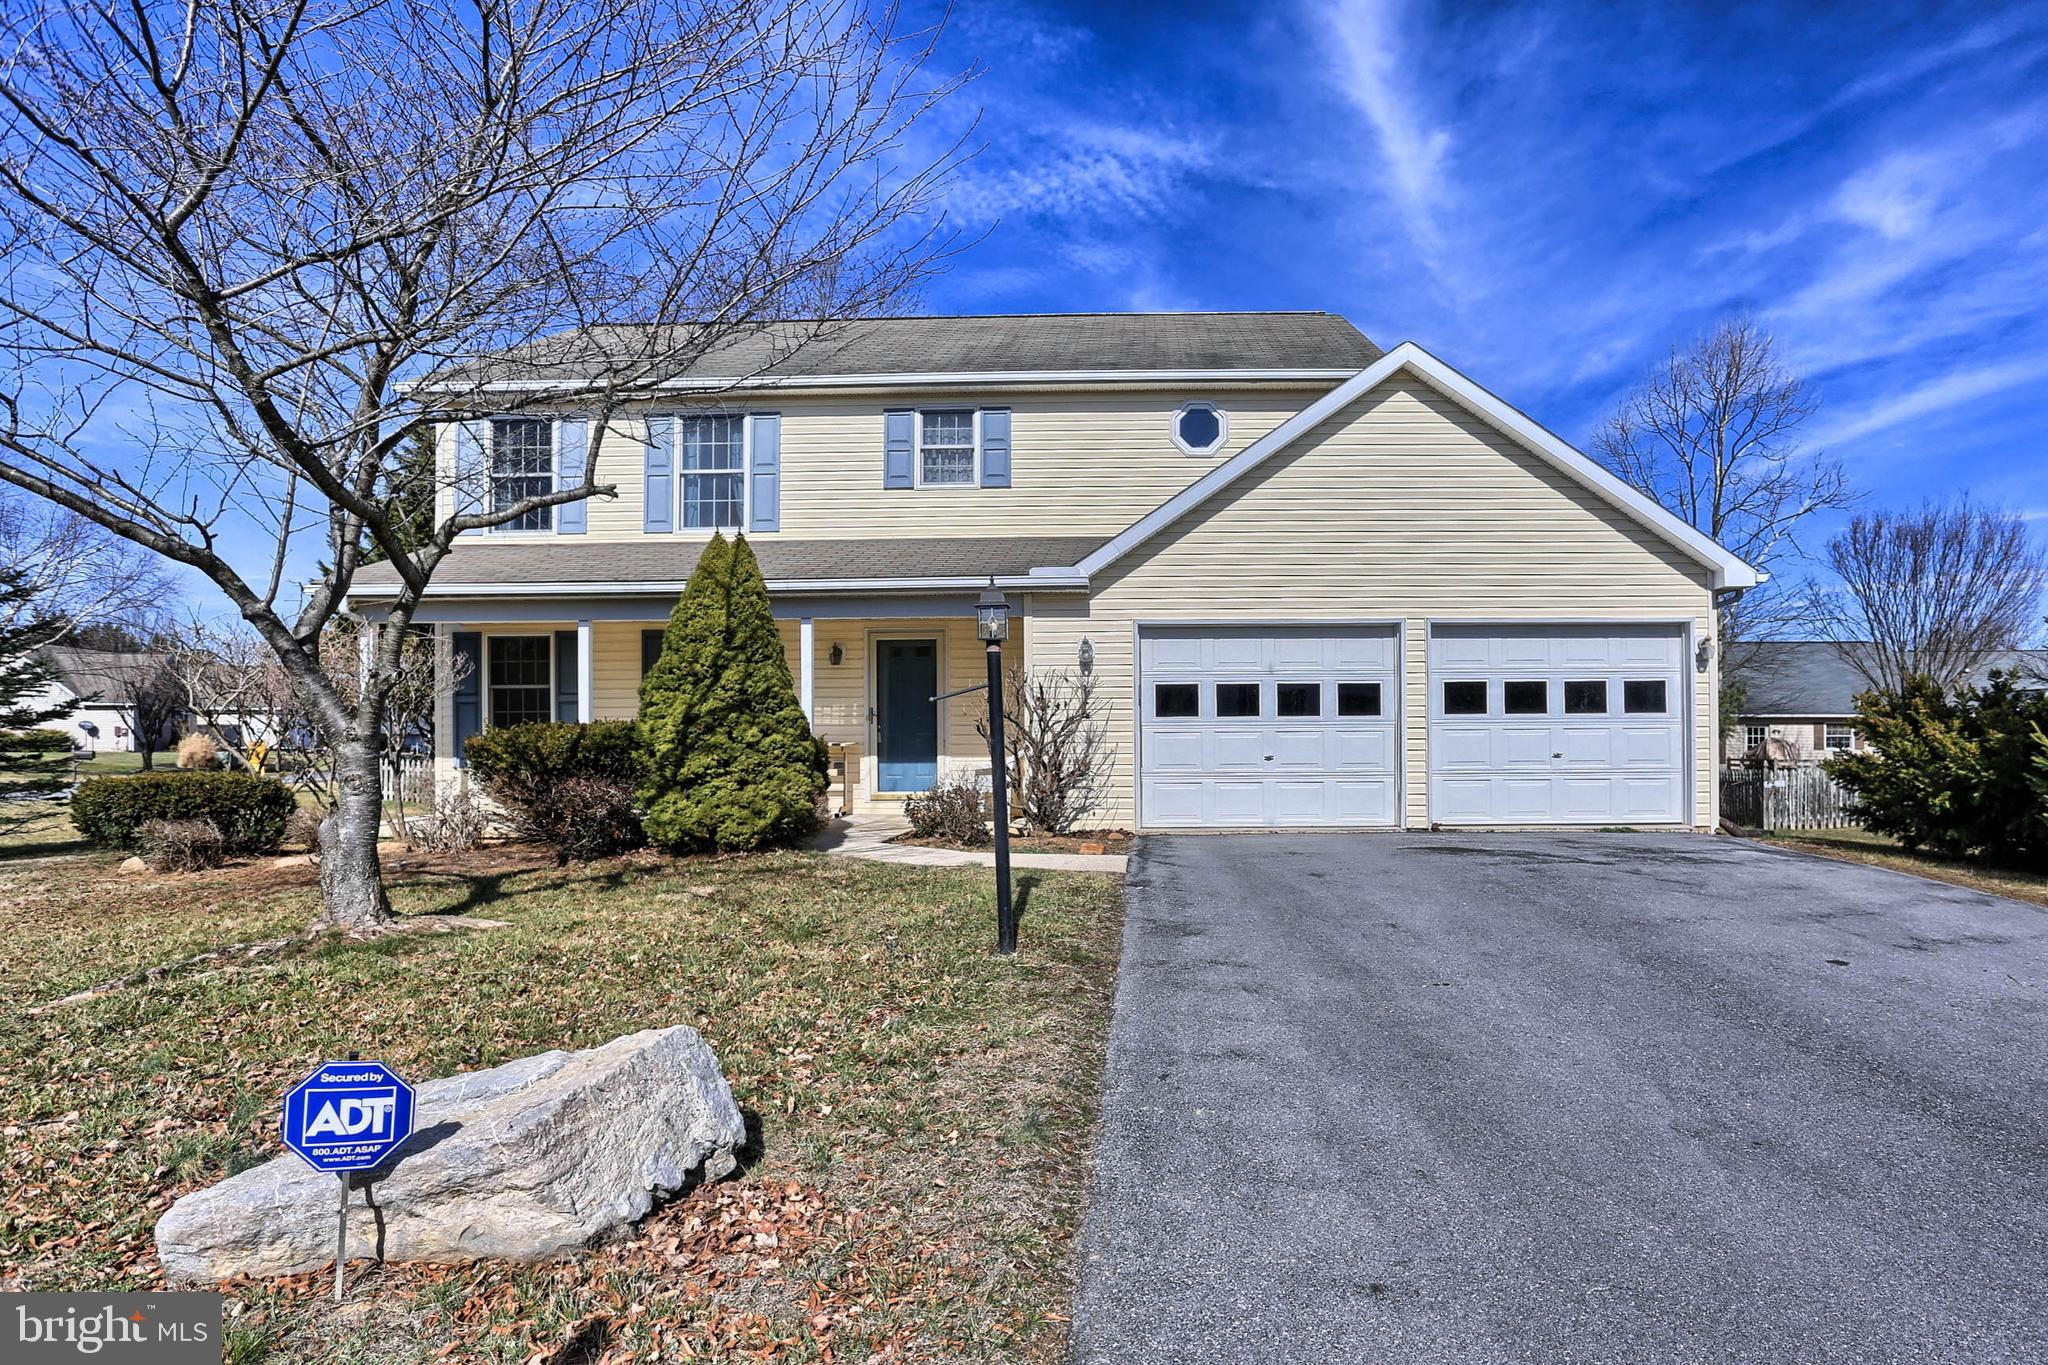 Nice Colonial on corner lot in the much sought after Spring Mills Subdivision. This home features 3